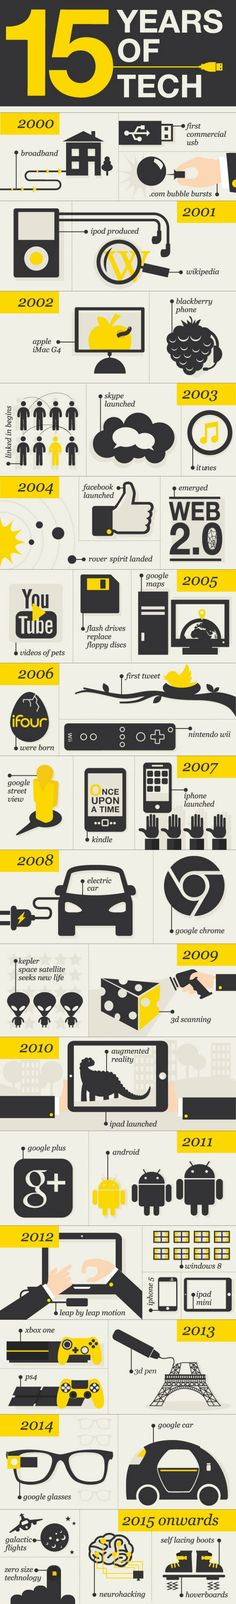 15 years of technology - tech